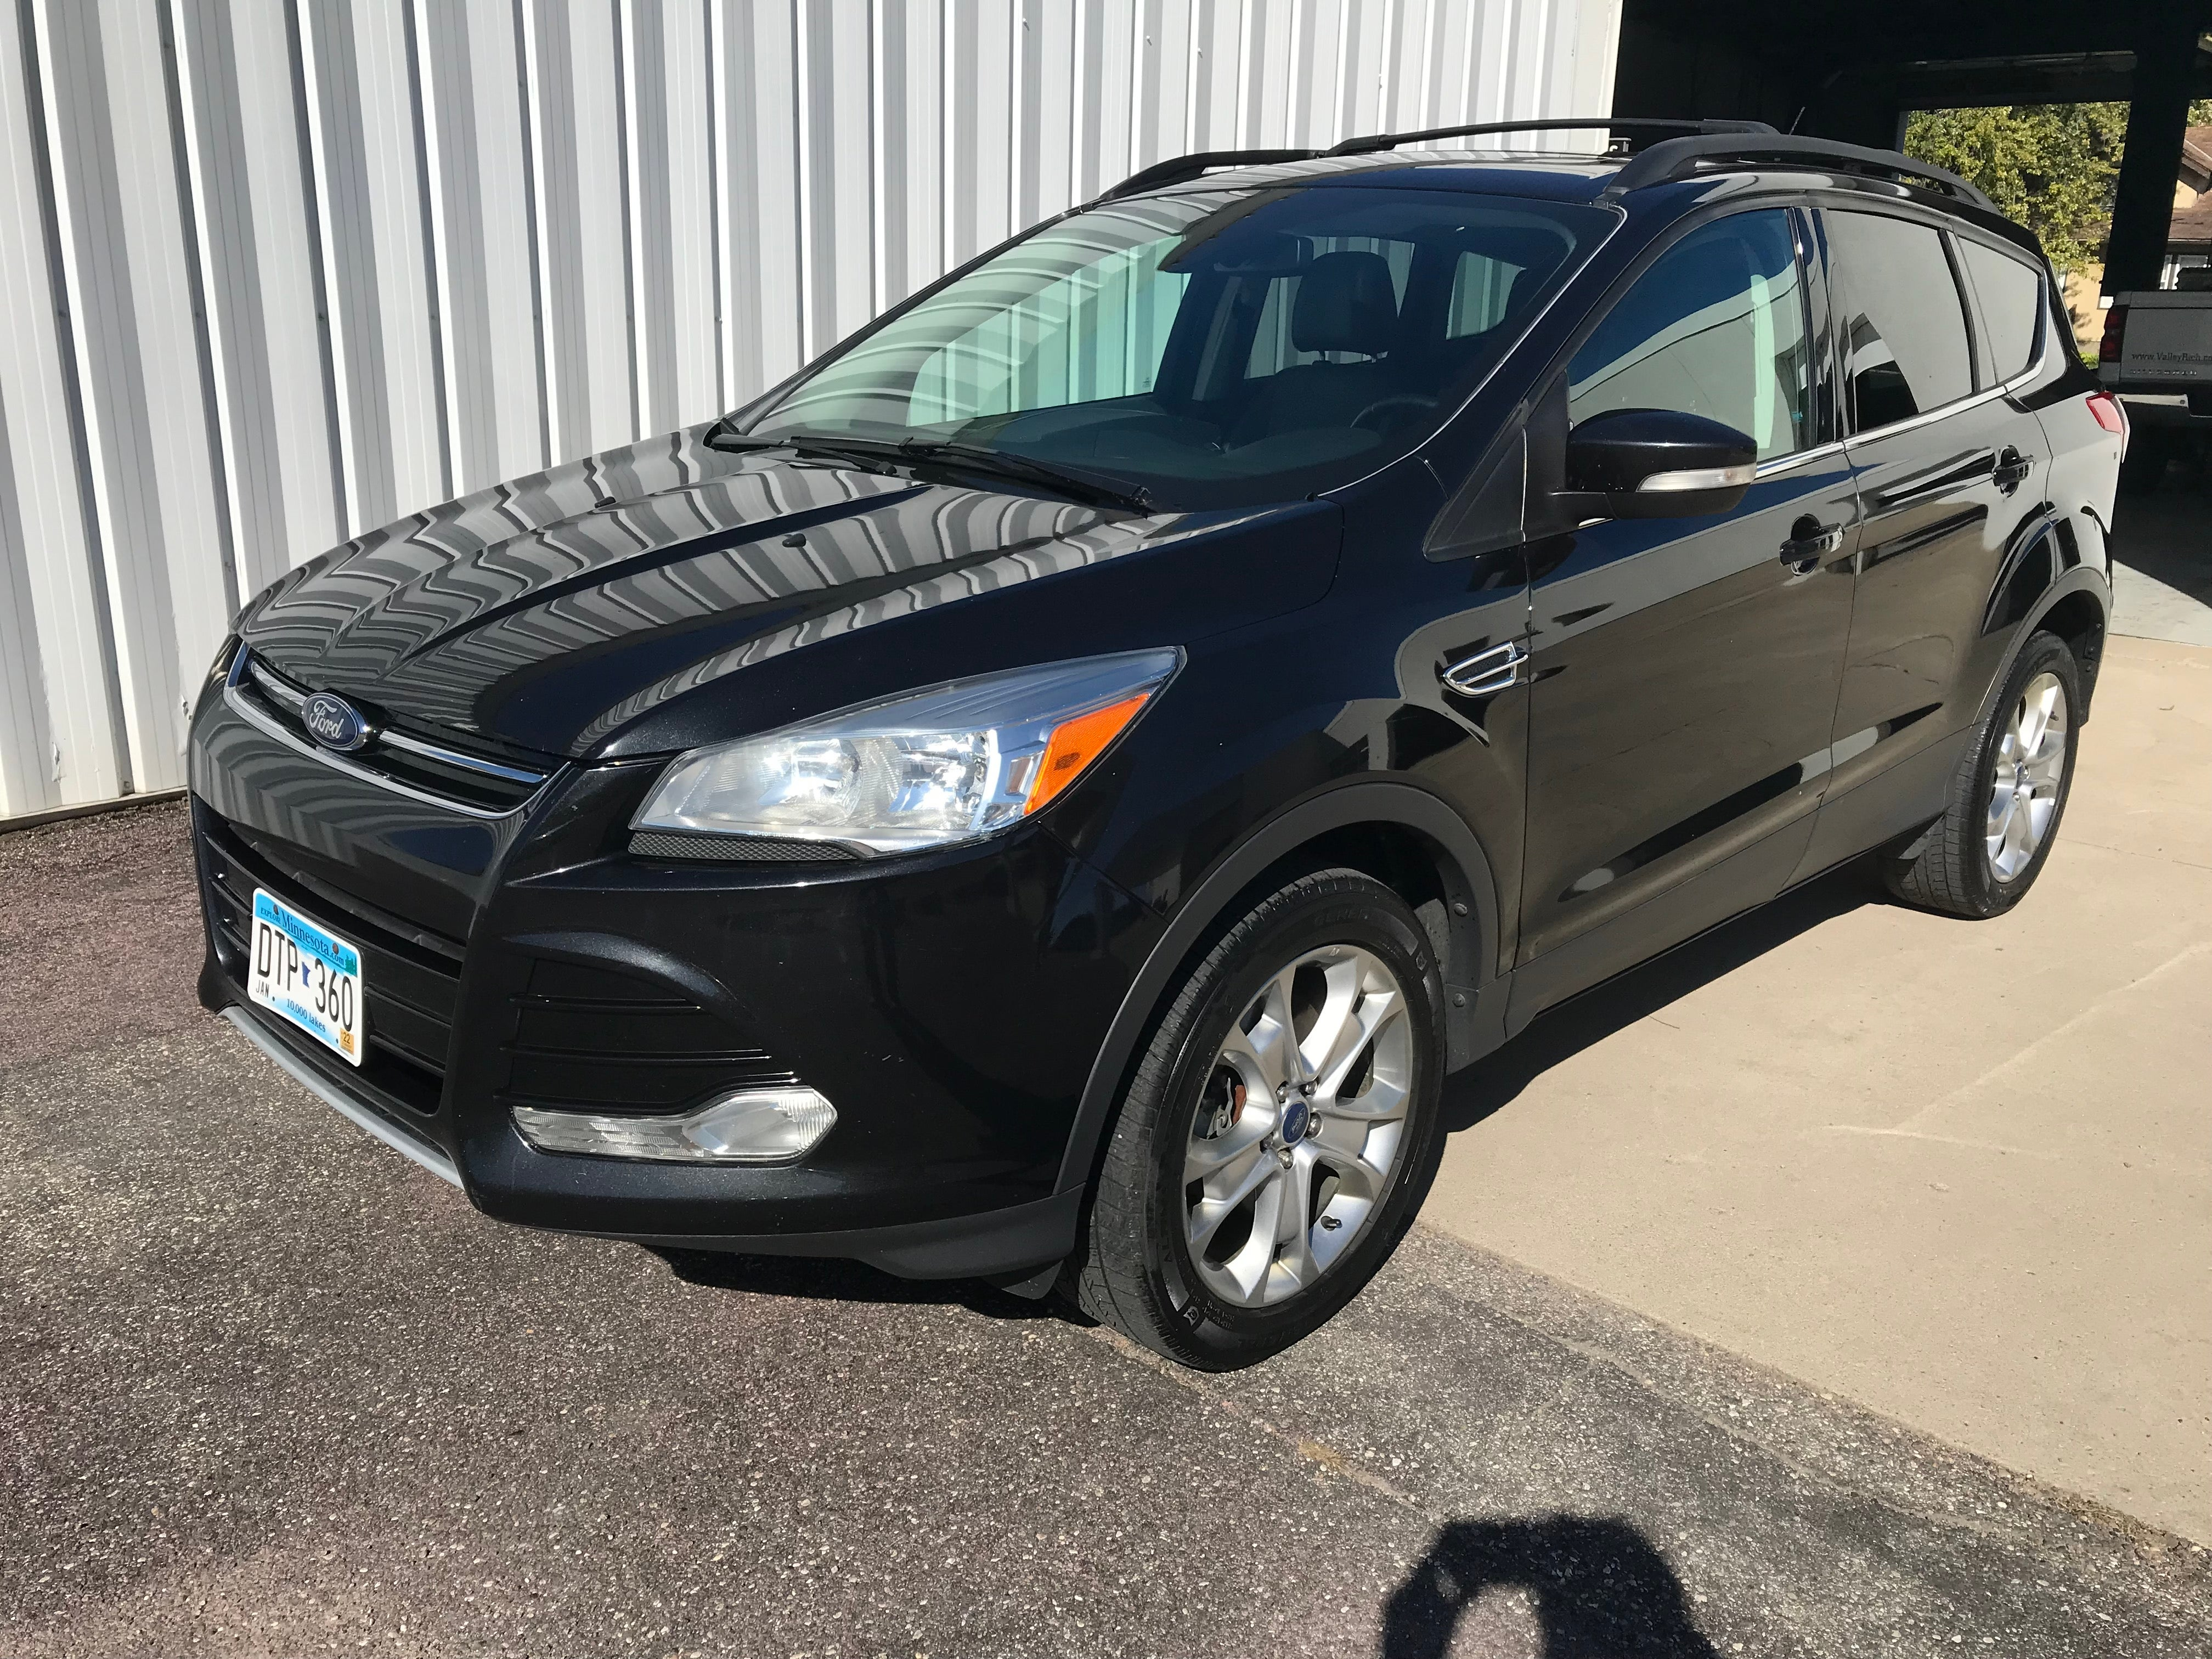 Used 2013 Ford Escape SEL with VIN 1FMCU9H96DUD93165 for sale in Arlington, Minnesota